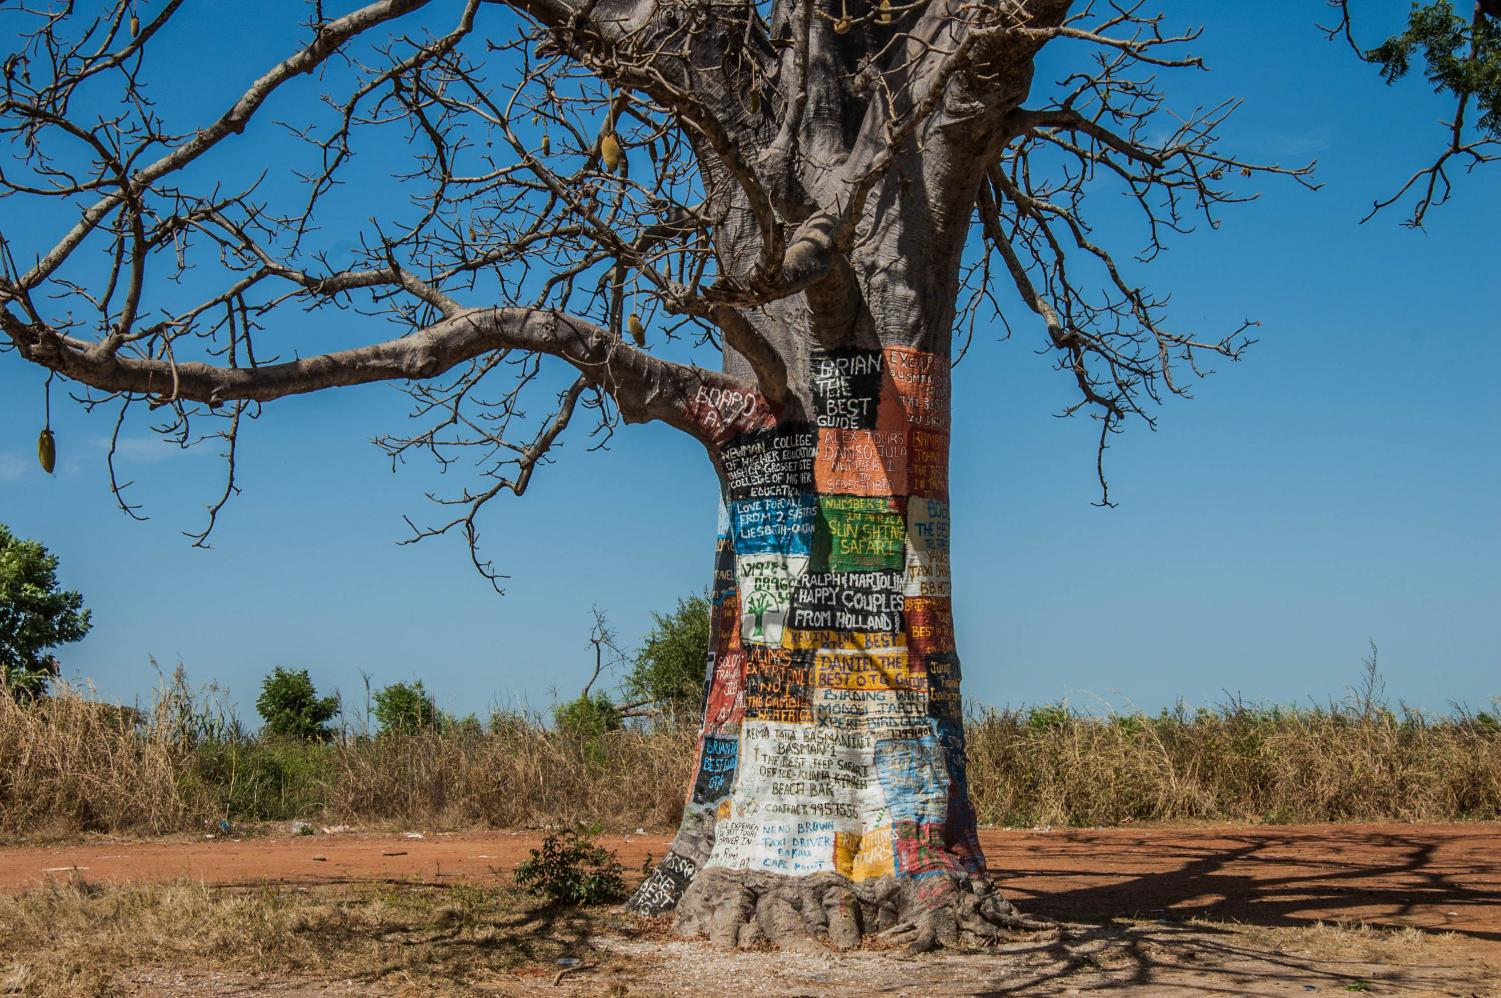 A lone baobab stands alone in the desert. The bark is painted by those that have passed through, highlighting its sentiment and unique impact on guides and natives alike.